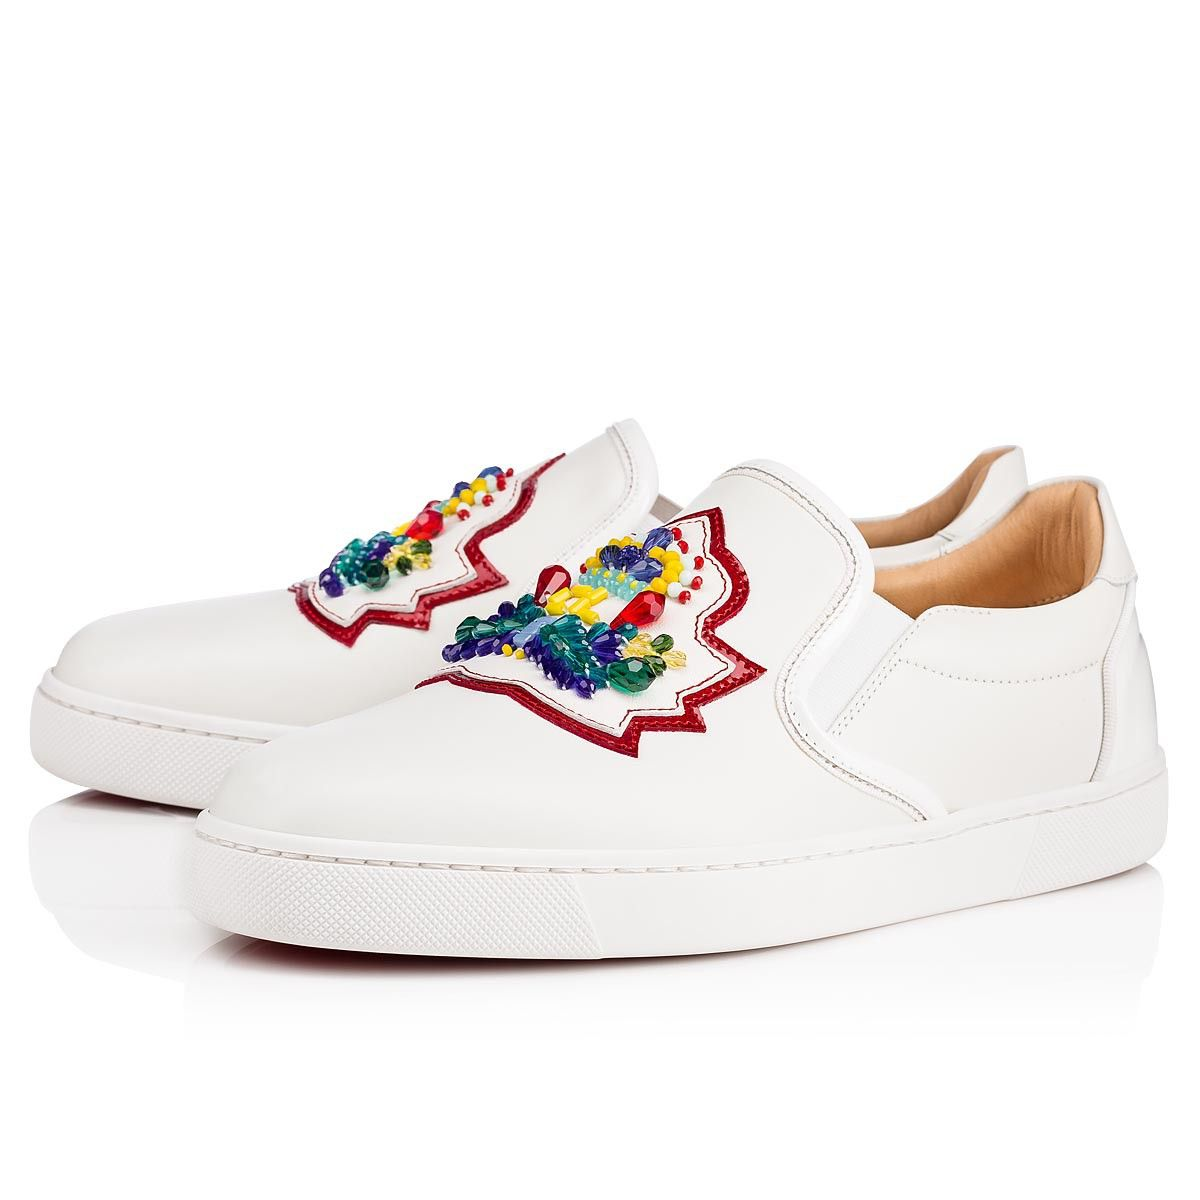 8489aa7e4b1d Christian Louboutin United States Official Online Boutique - Masterlogo  Flat Latte Leather available online. Discover